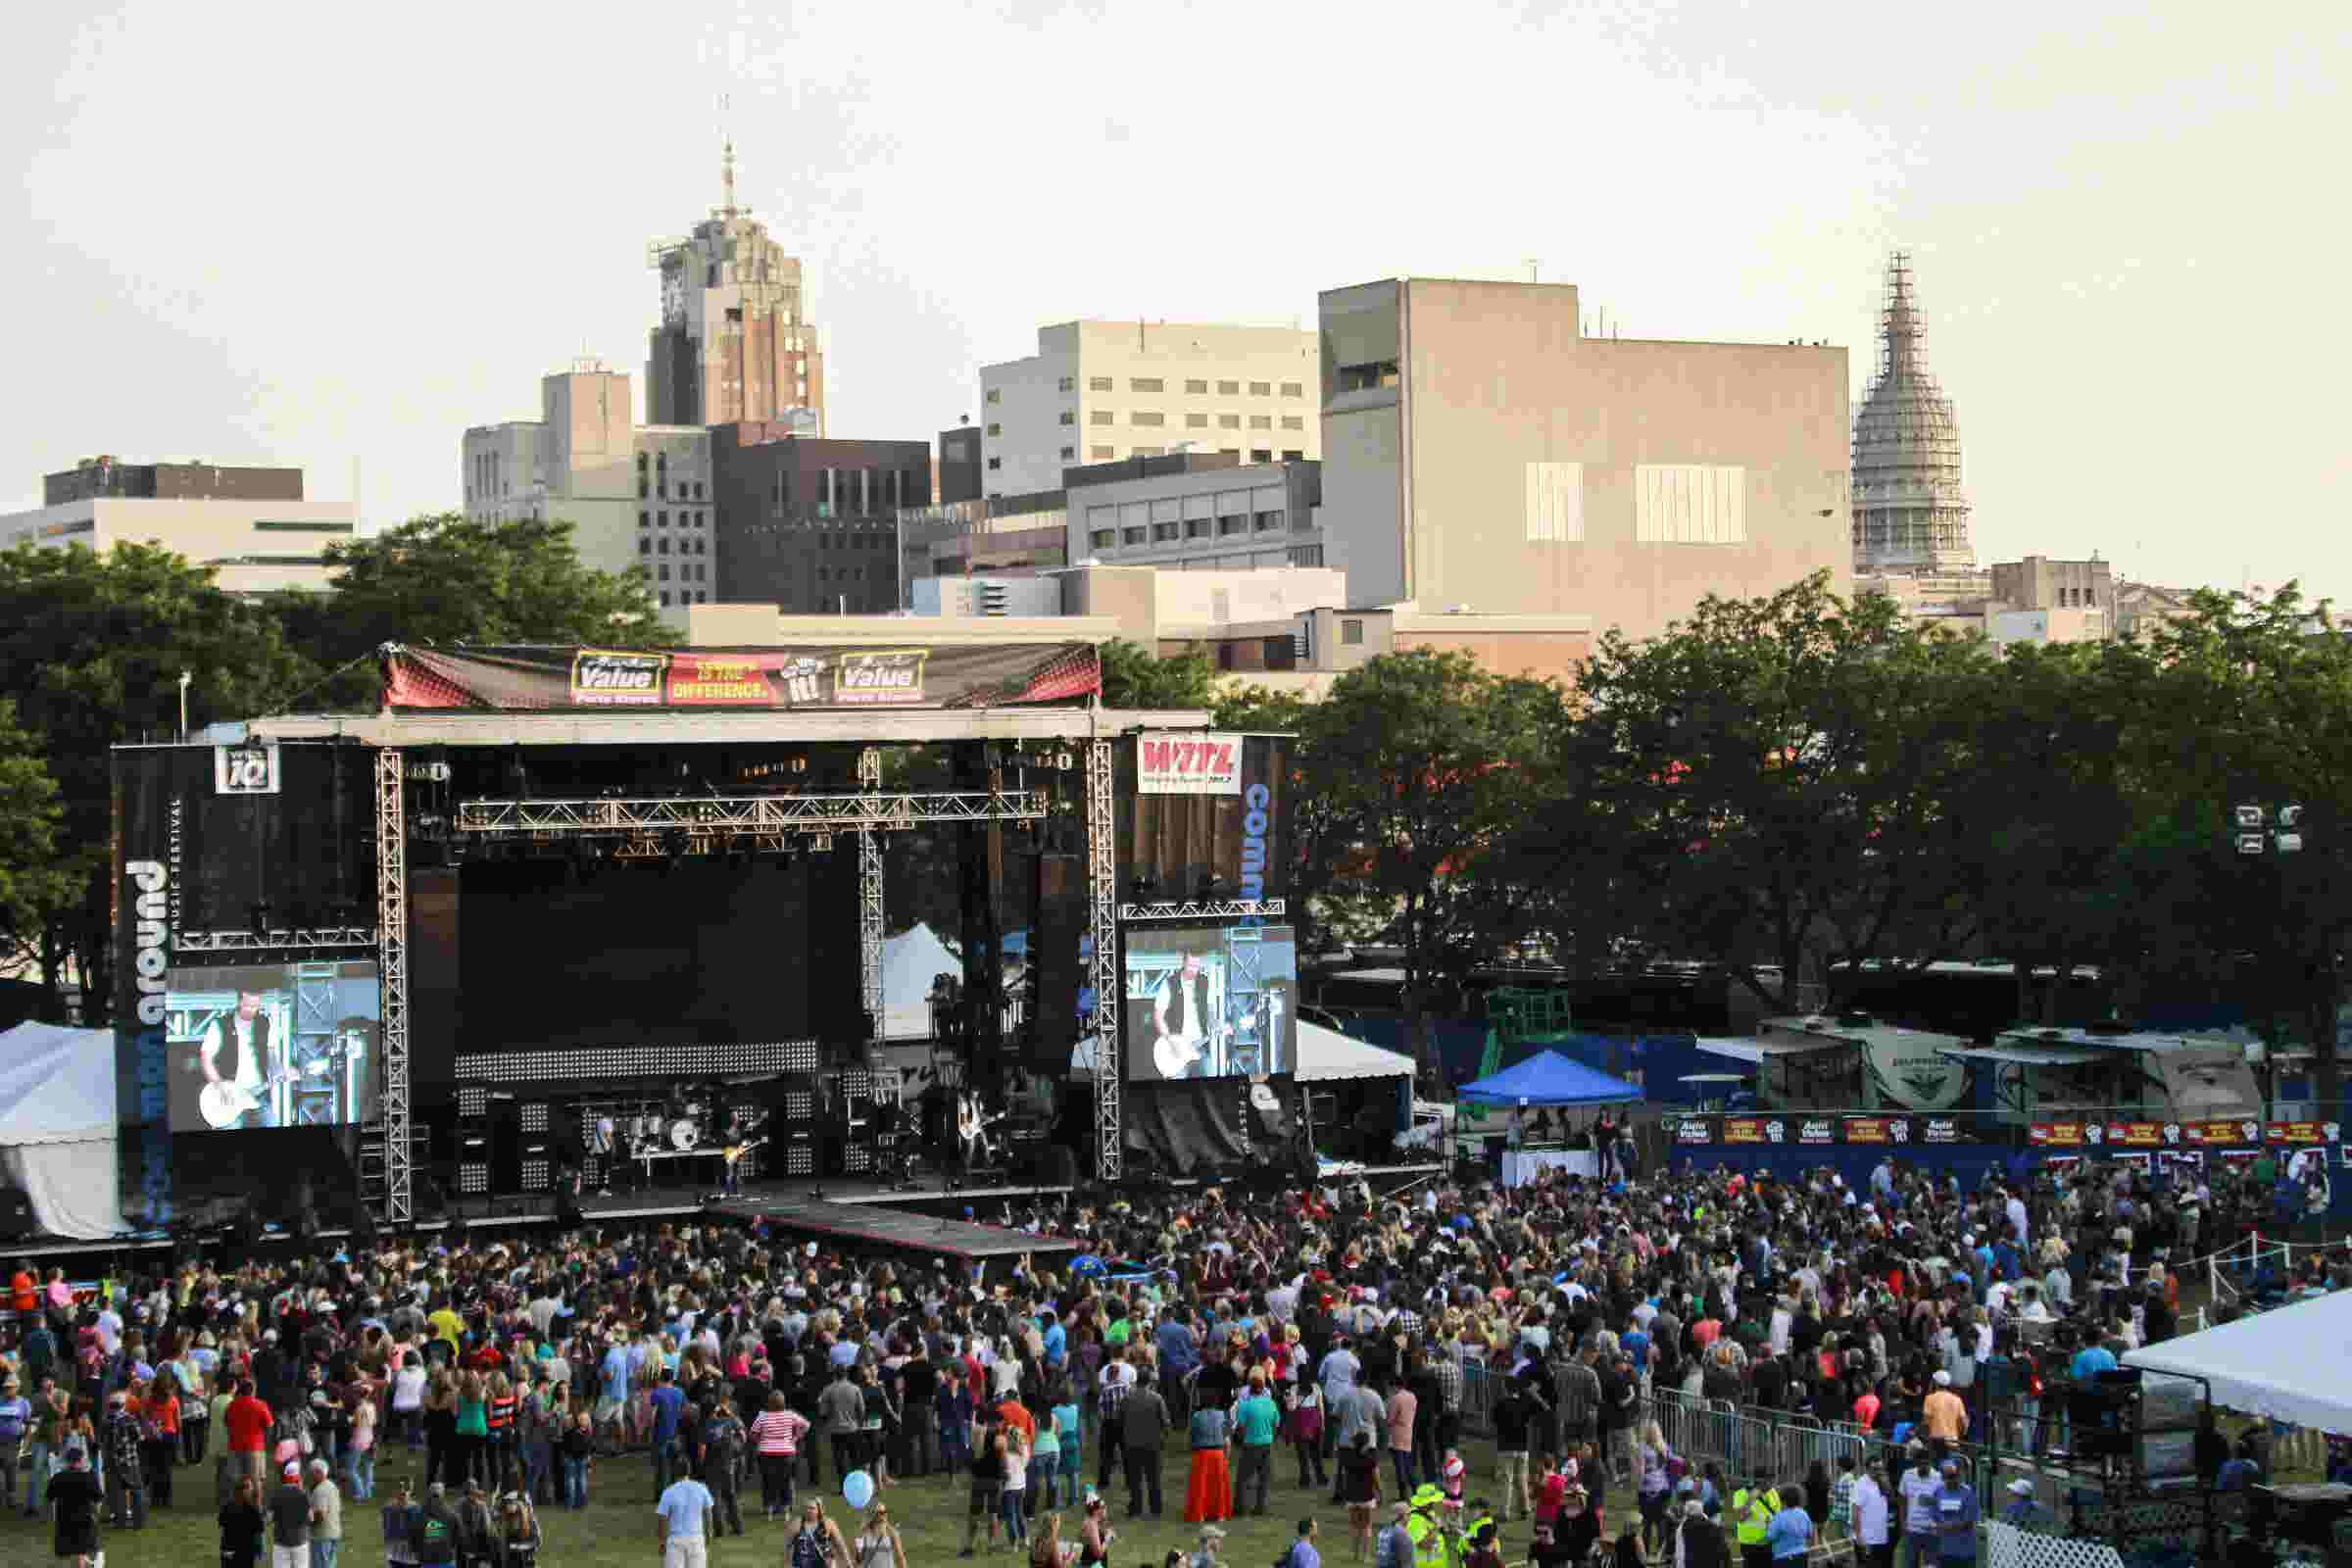 Taste of Country music festival at Cooley Law School Stadium put on hold, may return